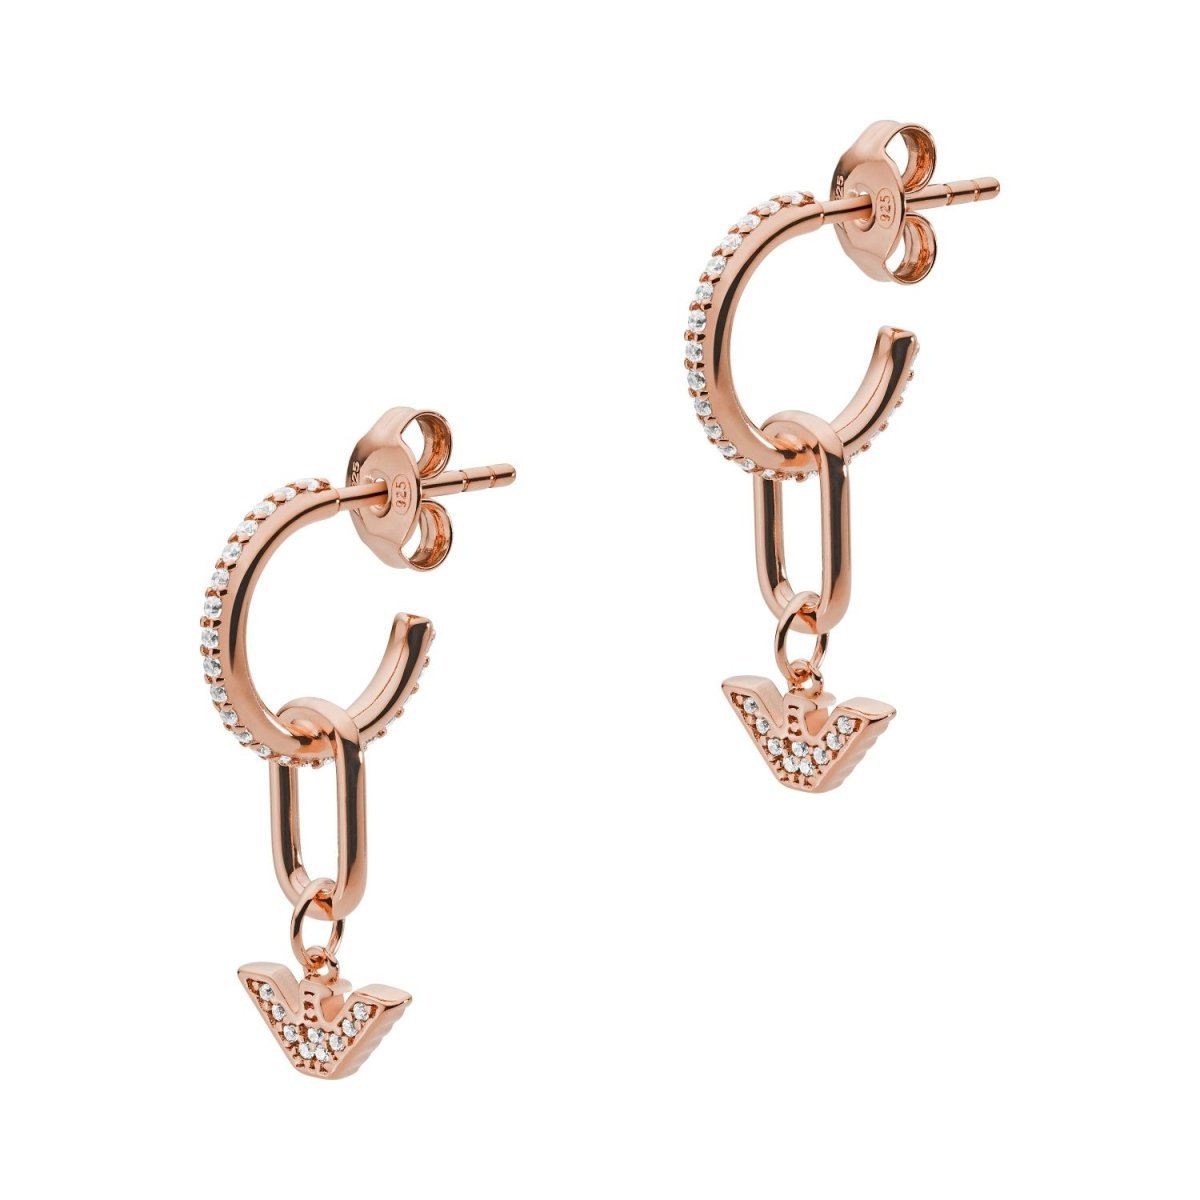 Emporio Armani EG3461221 Pendant Earrings With Rose Gold Plated Silver - Goldy Jewelry Store